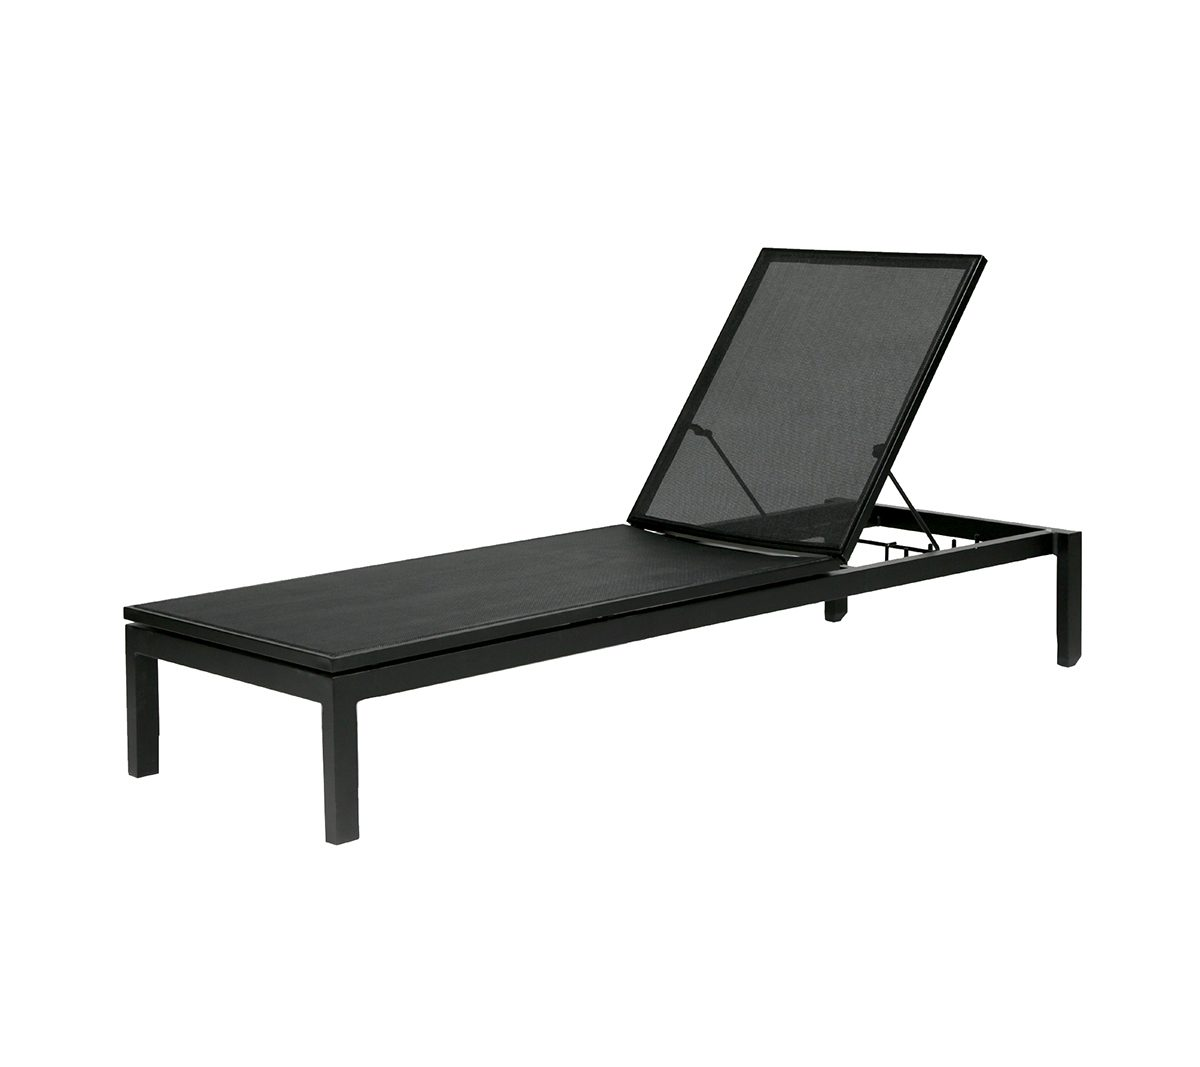 Tosca adjustable lounger with black mesh and frame